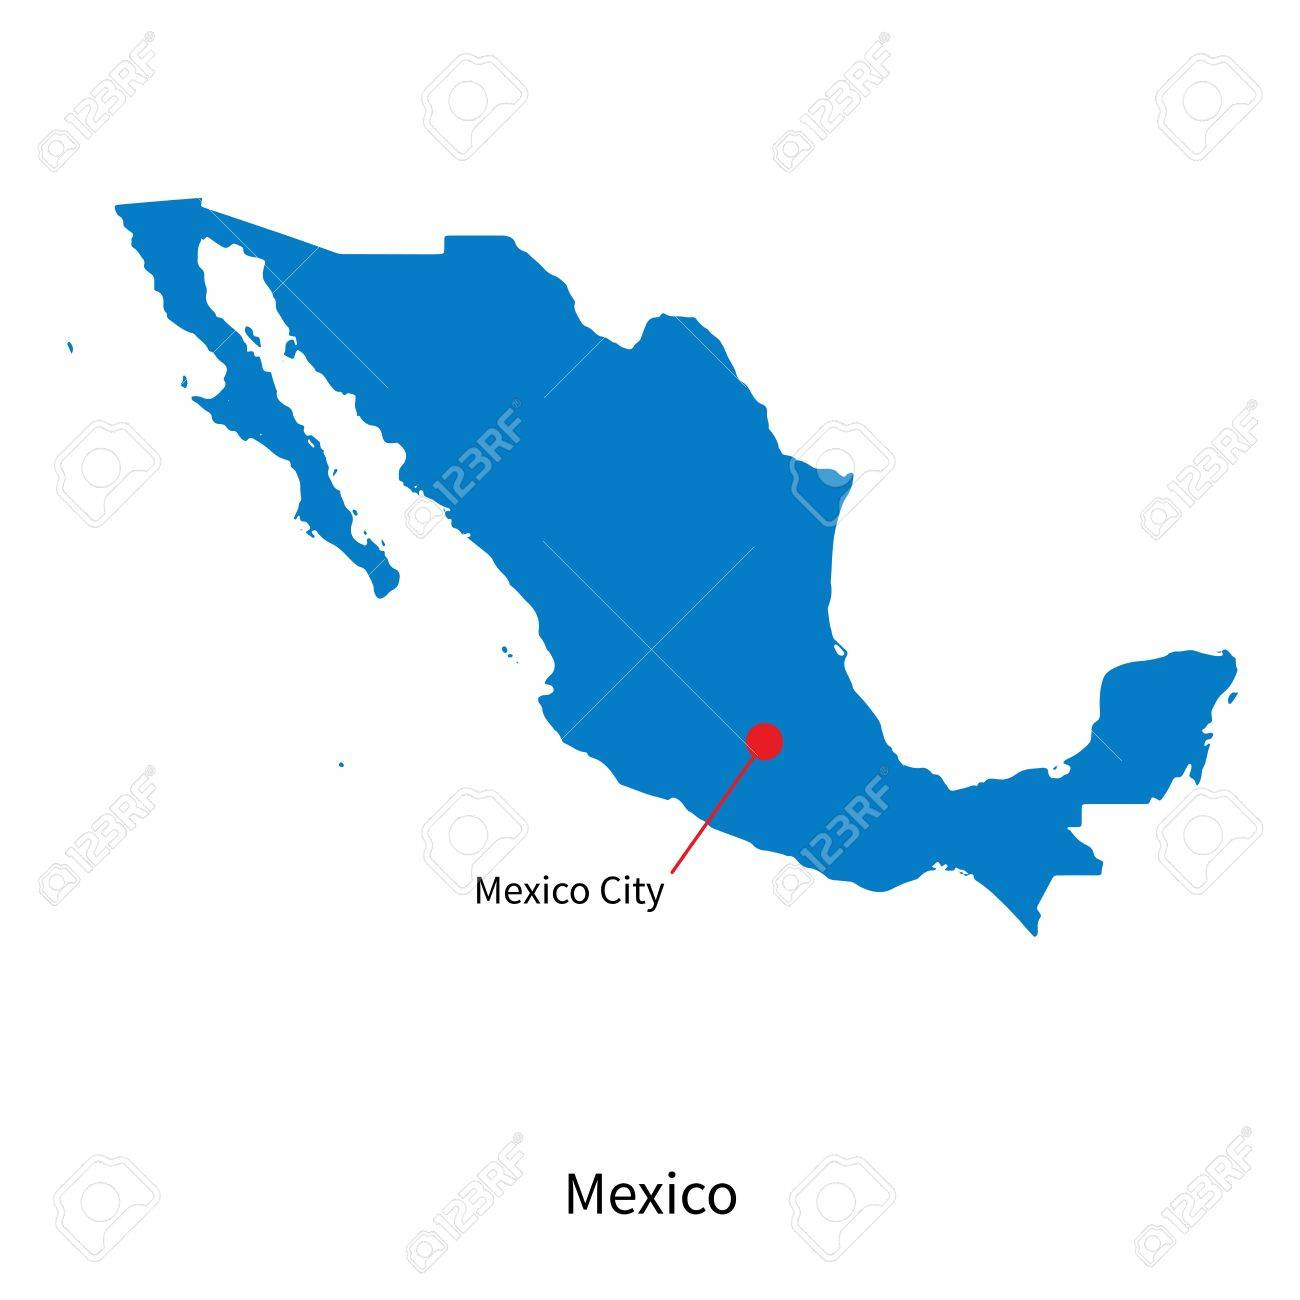 Detailed Map Of Mexico And Capital City Mexico Royalty Free Cliparts ...